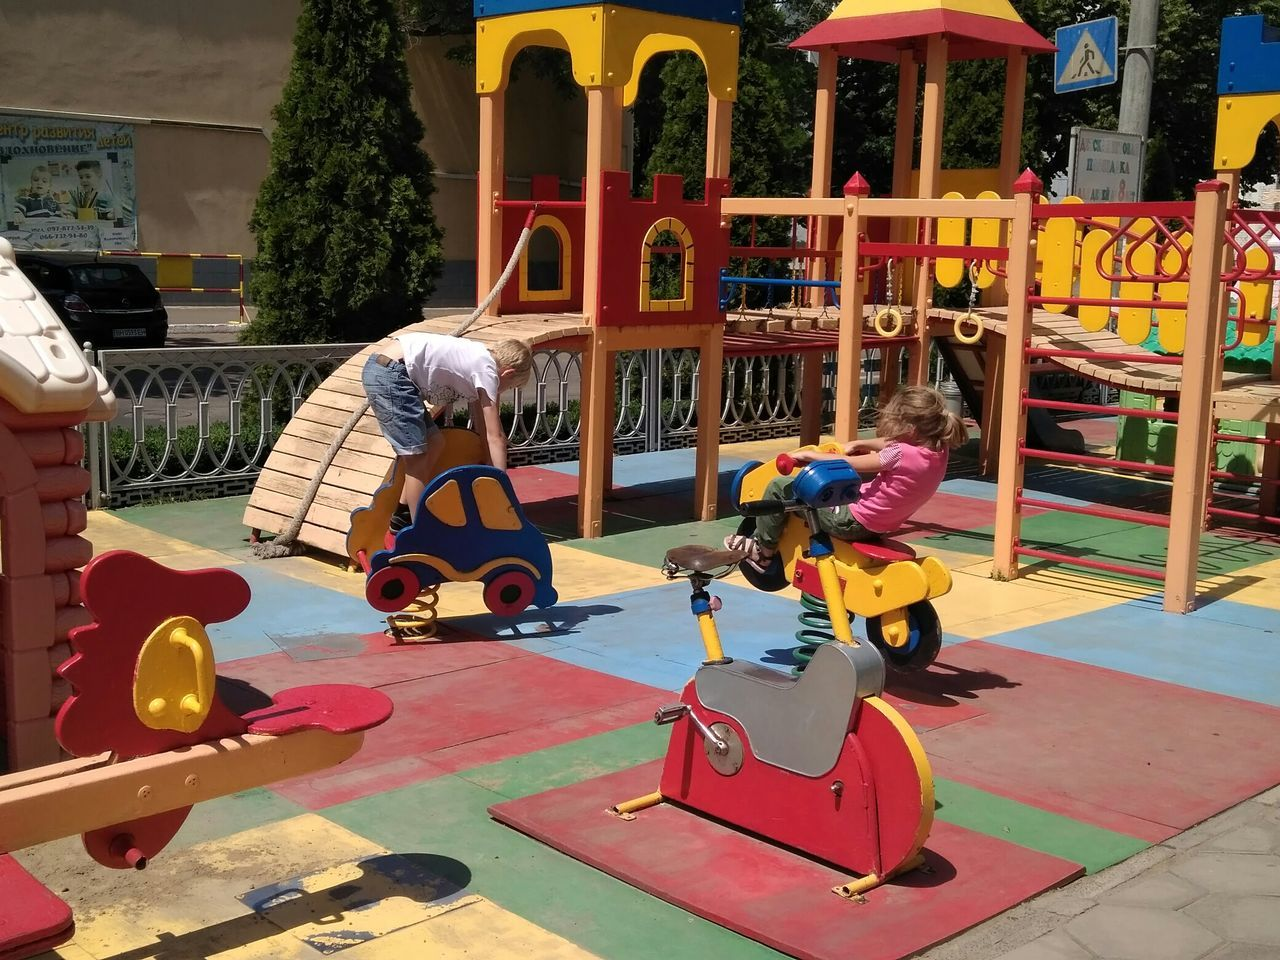 playground, childhood, real people, leisure activity, fun, outdoor play equipment, playing, full length, day, outdoors